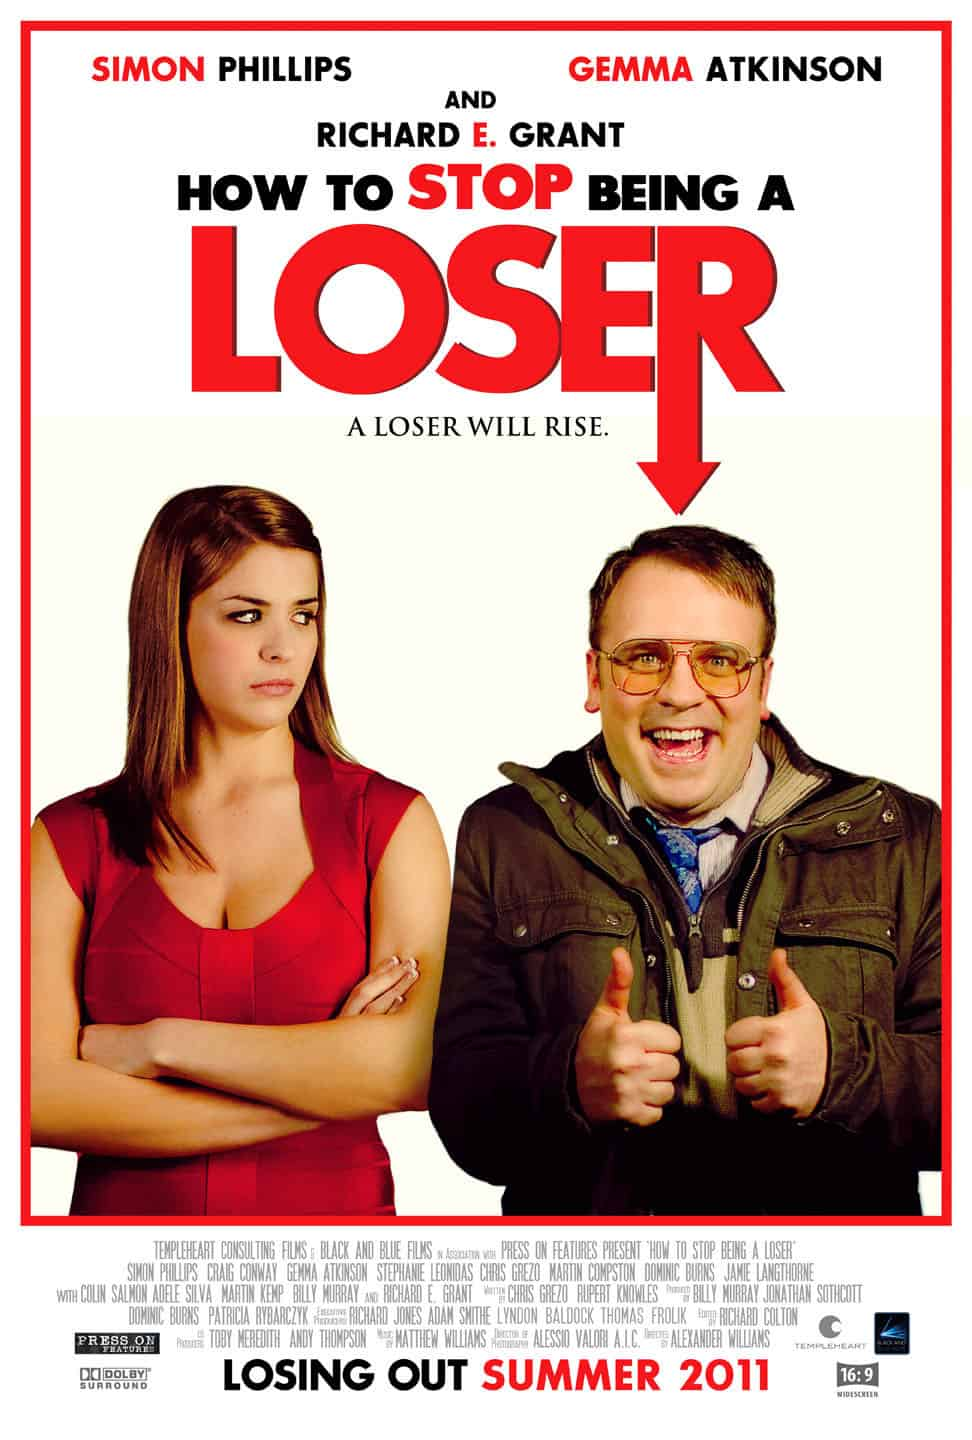 How to Stop Being a Loser, 2011